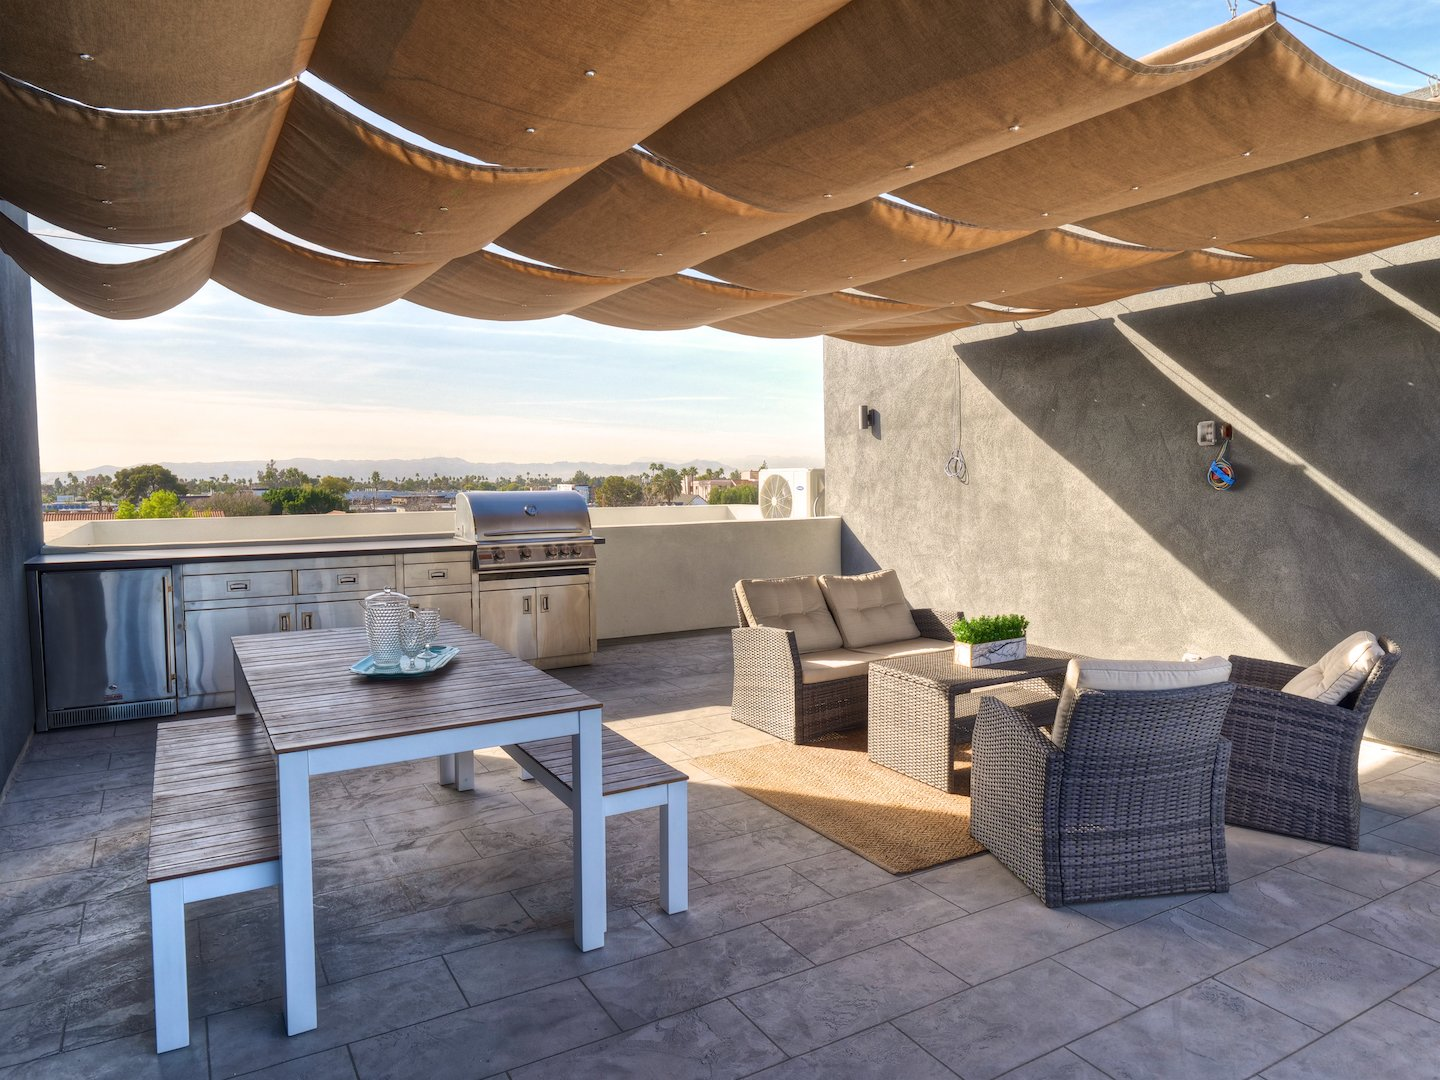 Entertain guests on your 440 sqft rooftop deck with built in barbecue and downtown Phoenix views.  Tagged: Outdoor, Rooftop, and Large Patio, Porch, Deck.  Stacks Modern by Chris Morrison